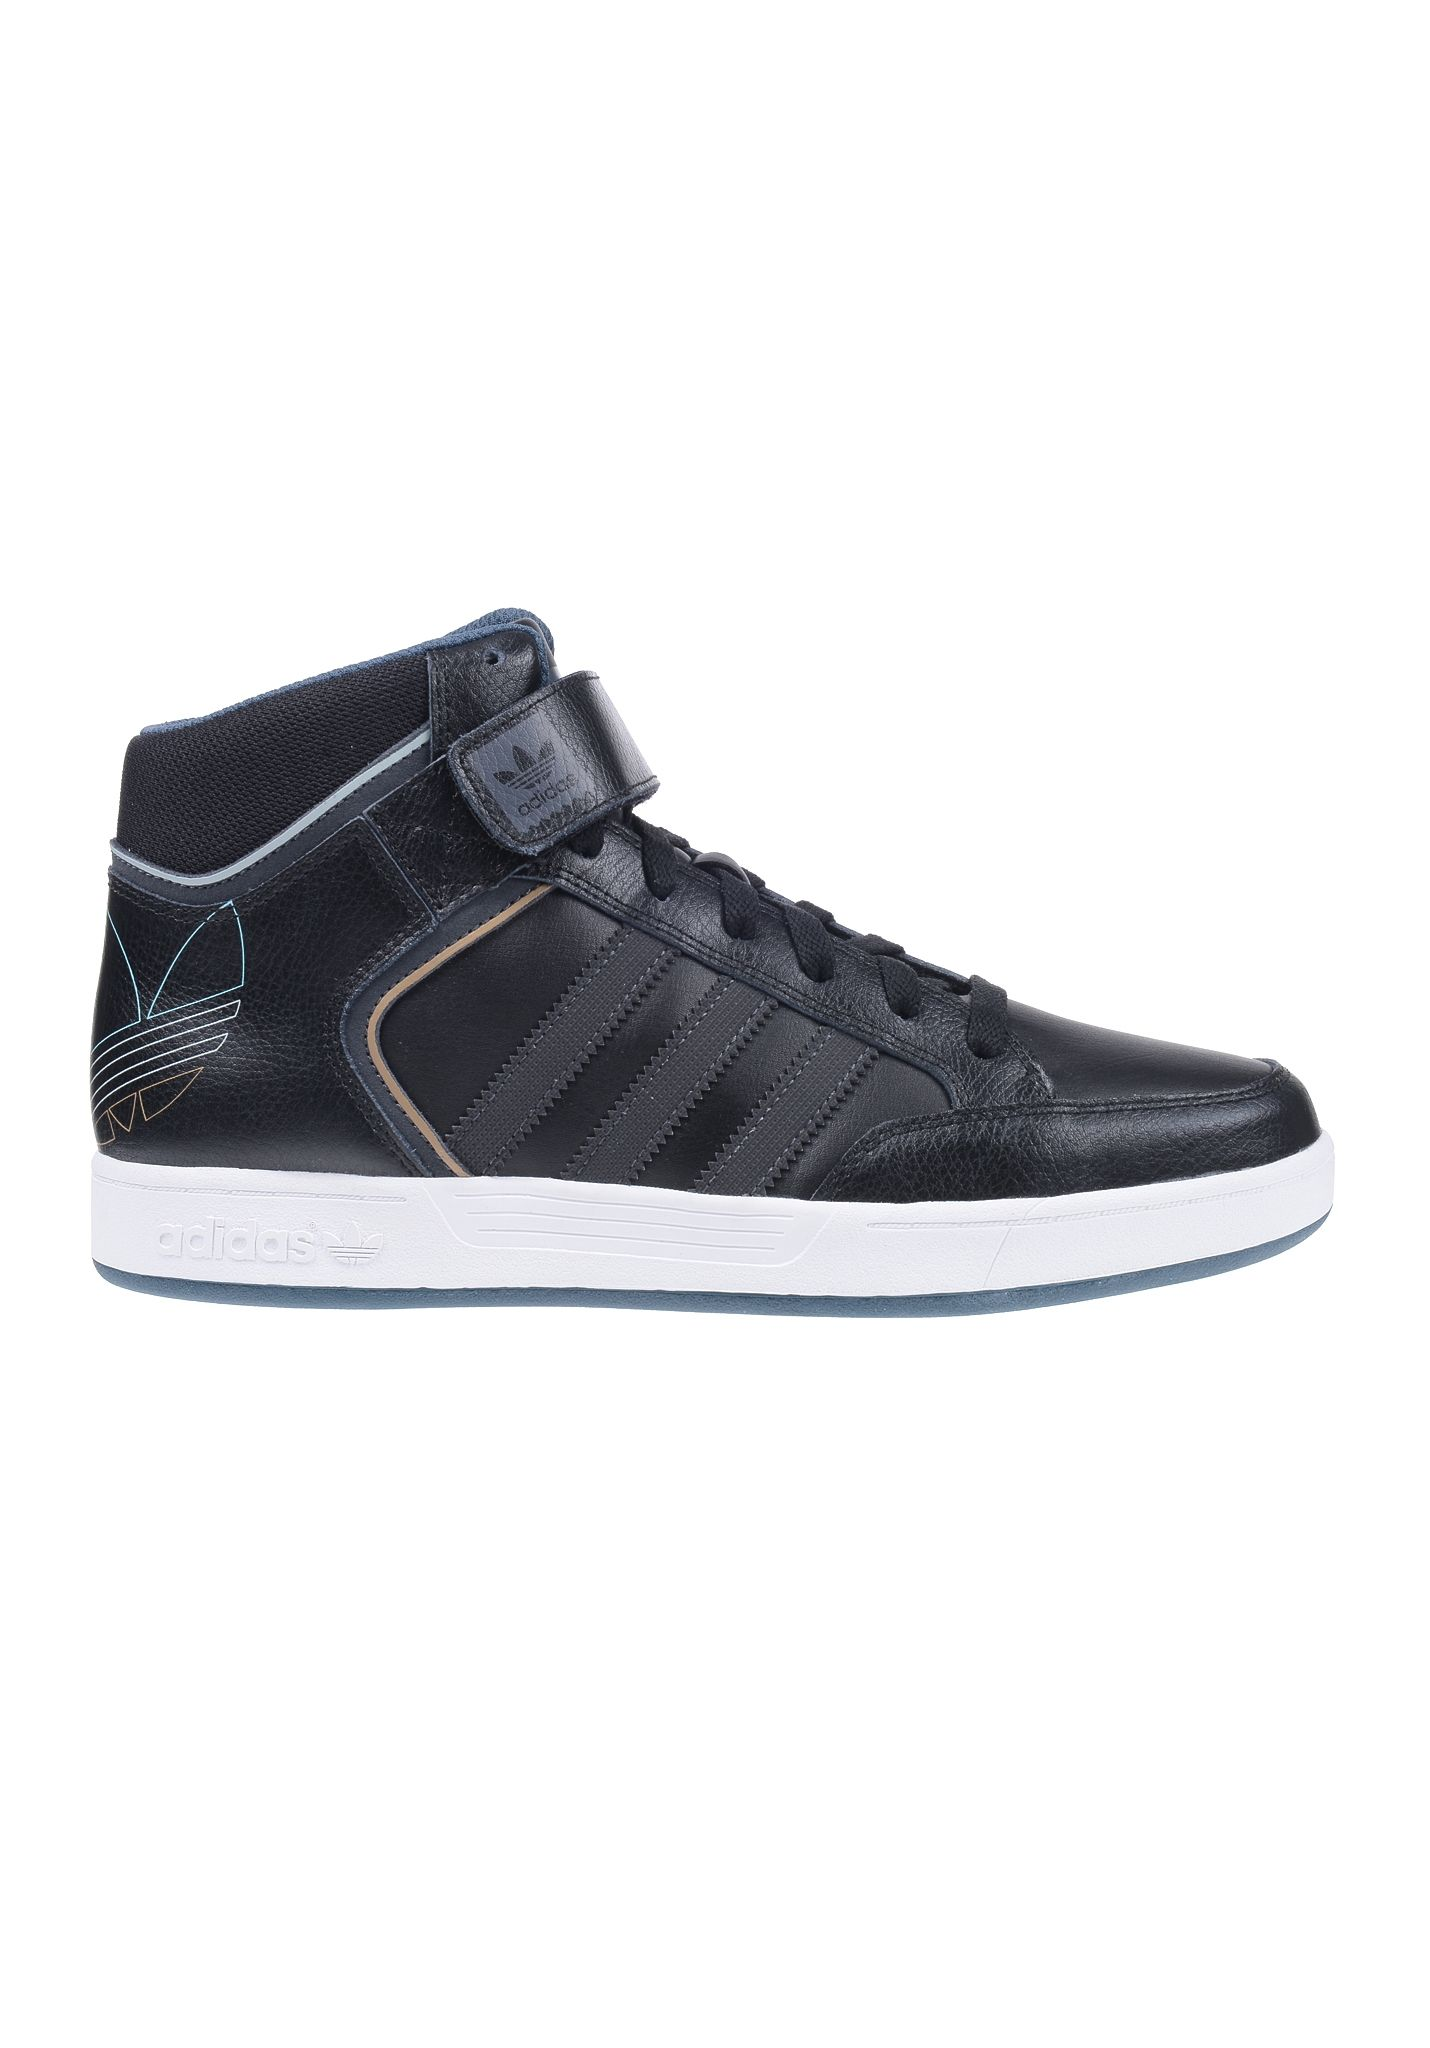 best service bdc04 f7600 ADIDAS Varial Mid Skateboarding - Baskets pour Homme - Noir - Planet Sports